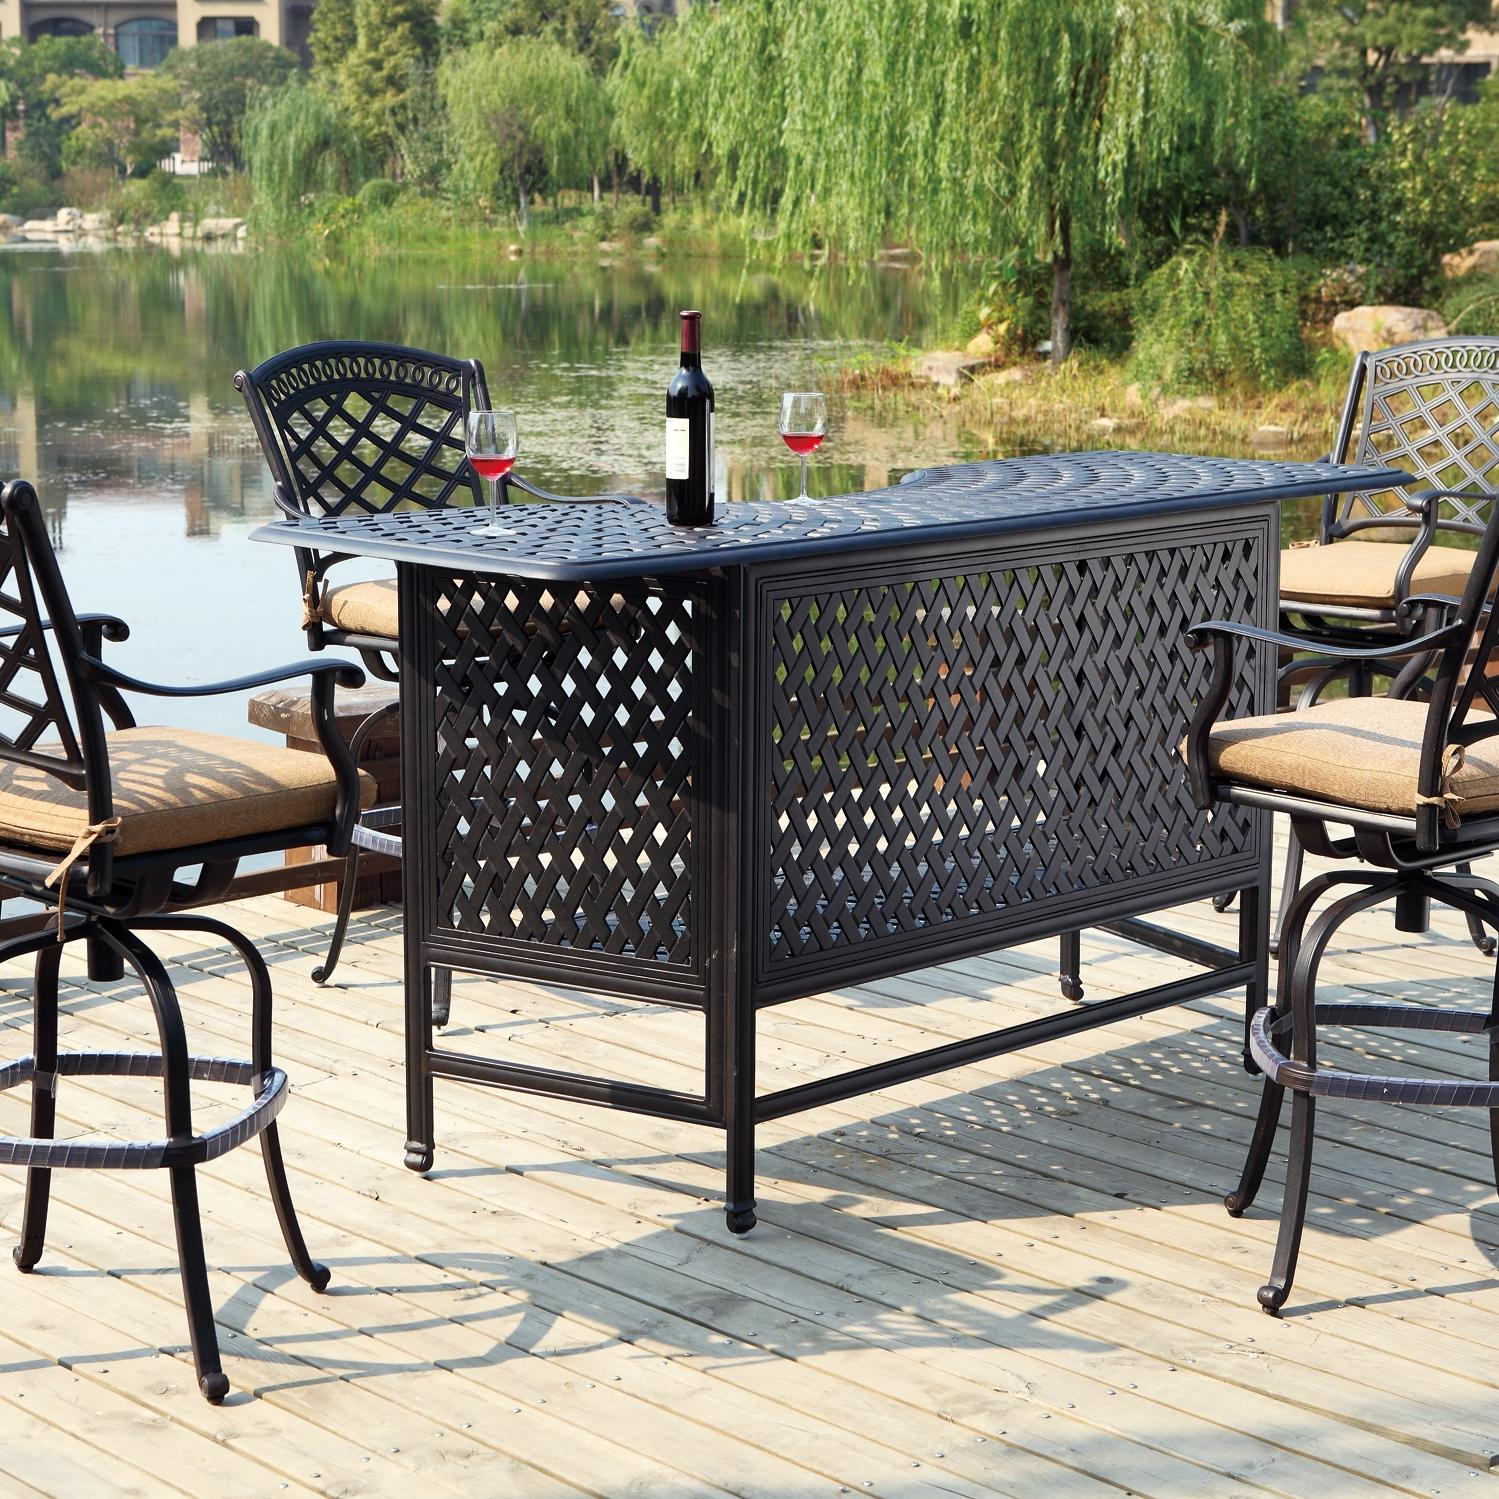 Outdoor patio bar set patio design ideas for Metal patio furniture sets